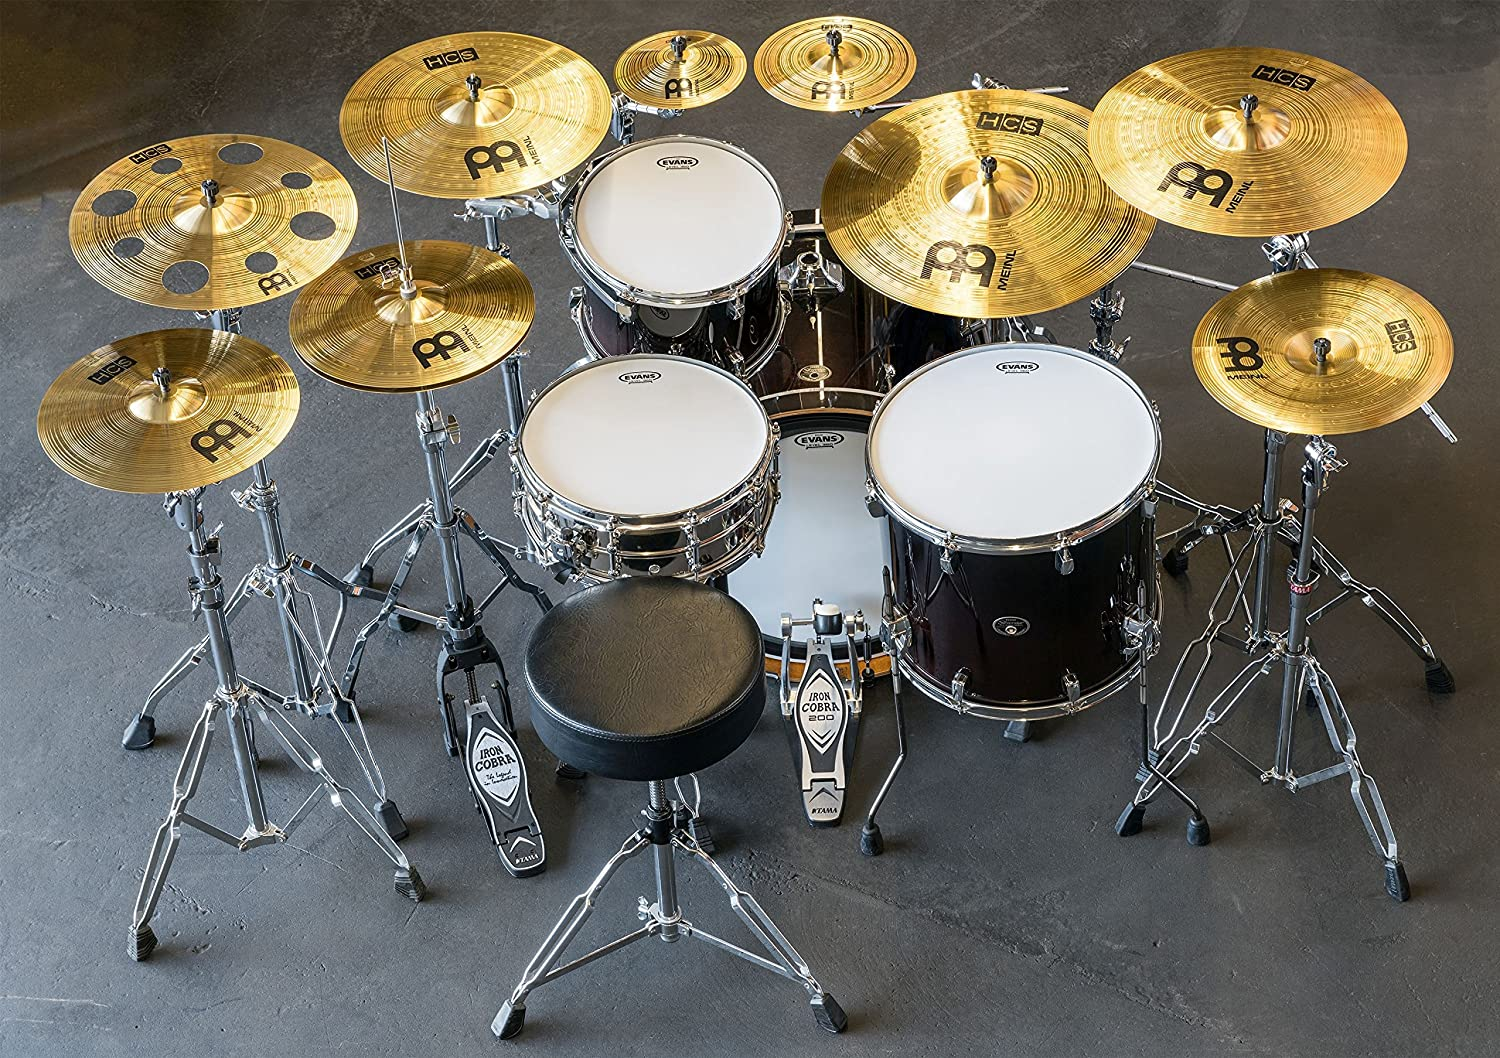 Meinl Cymbals HCS1314+10S HCS Cymbal Pack with Free Splash, Sticks and Lessons